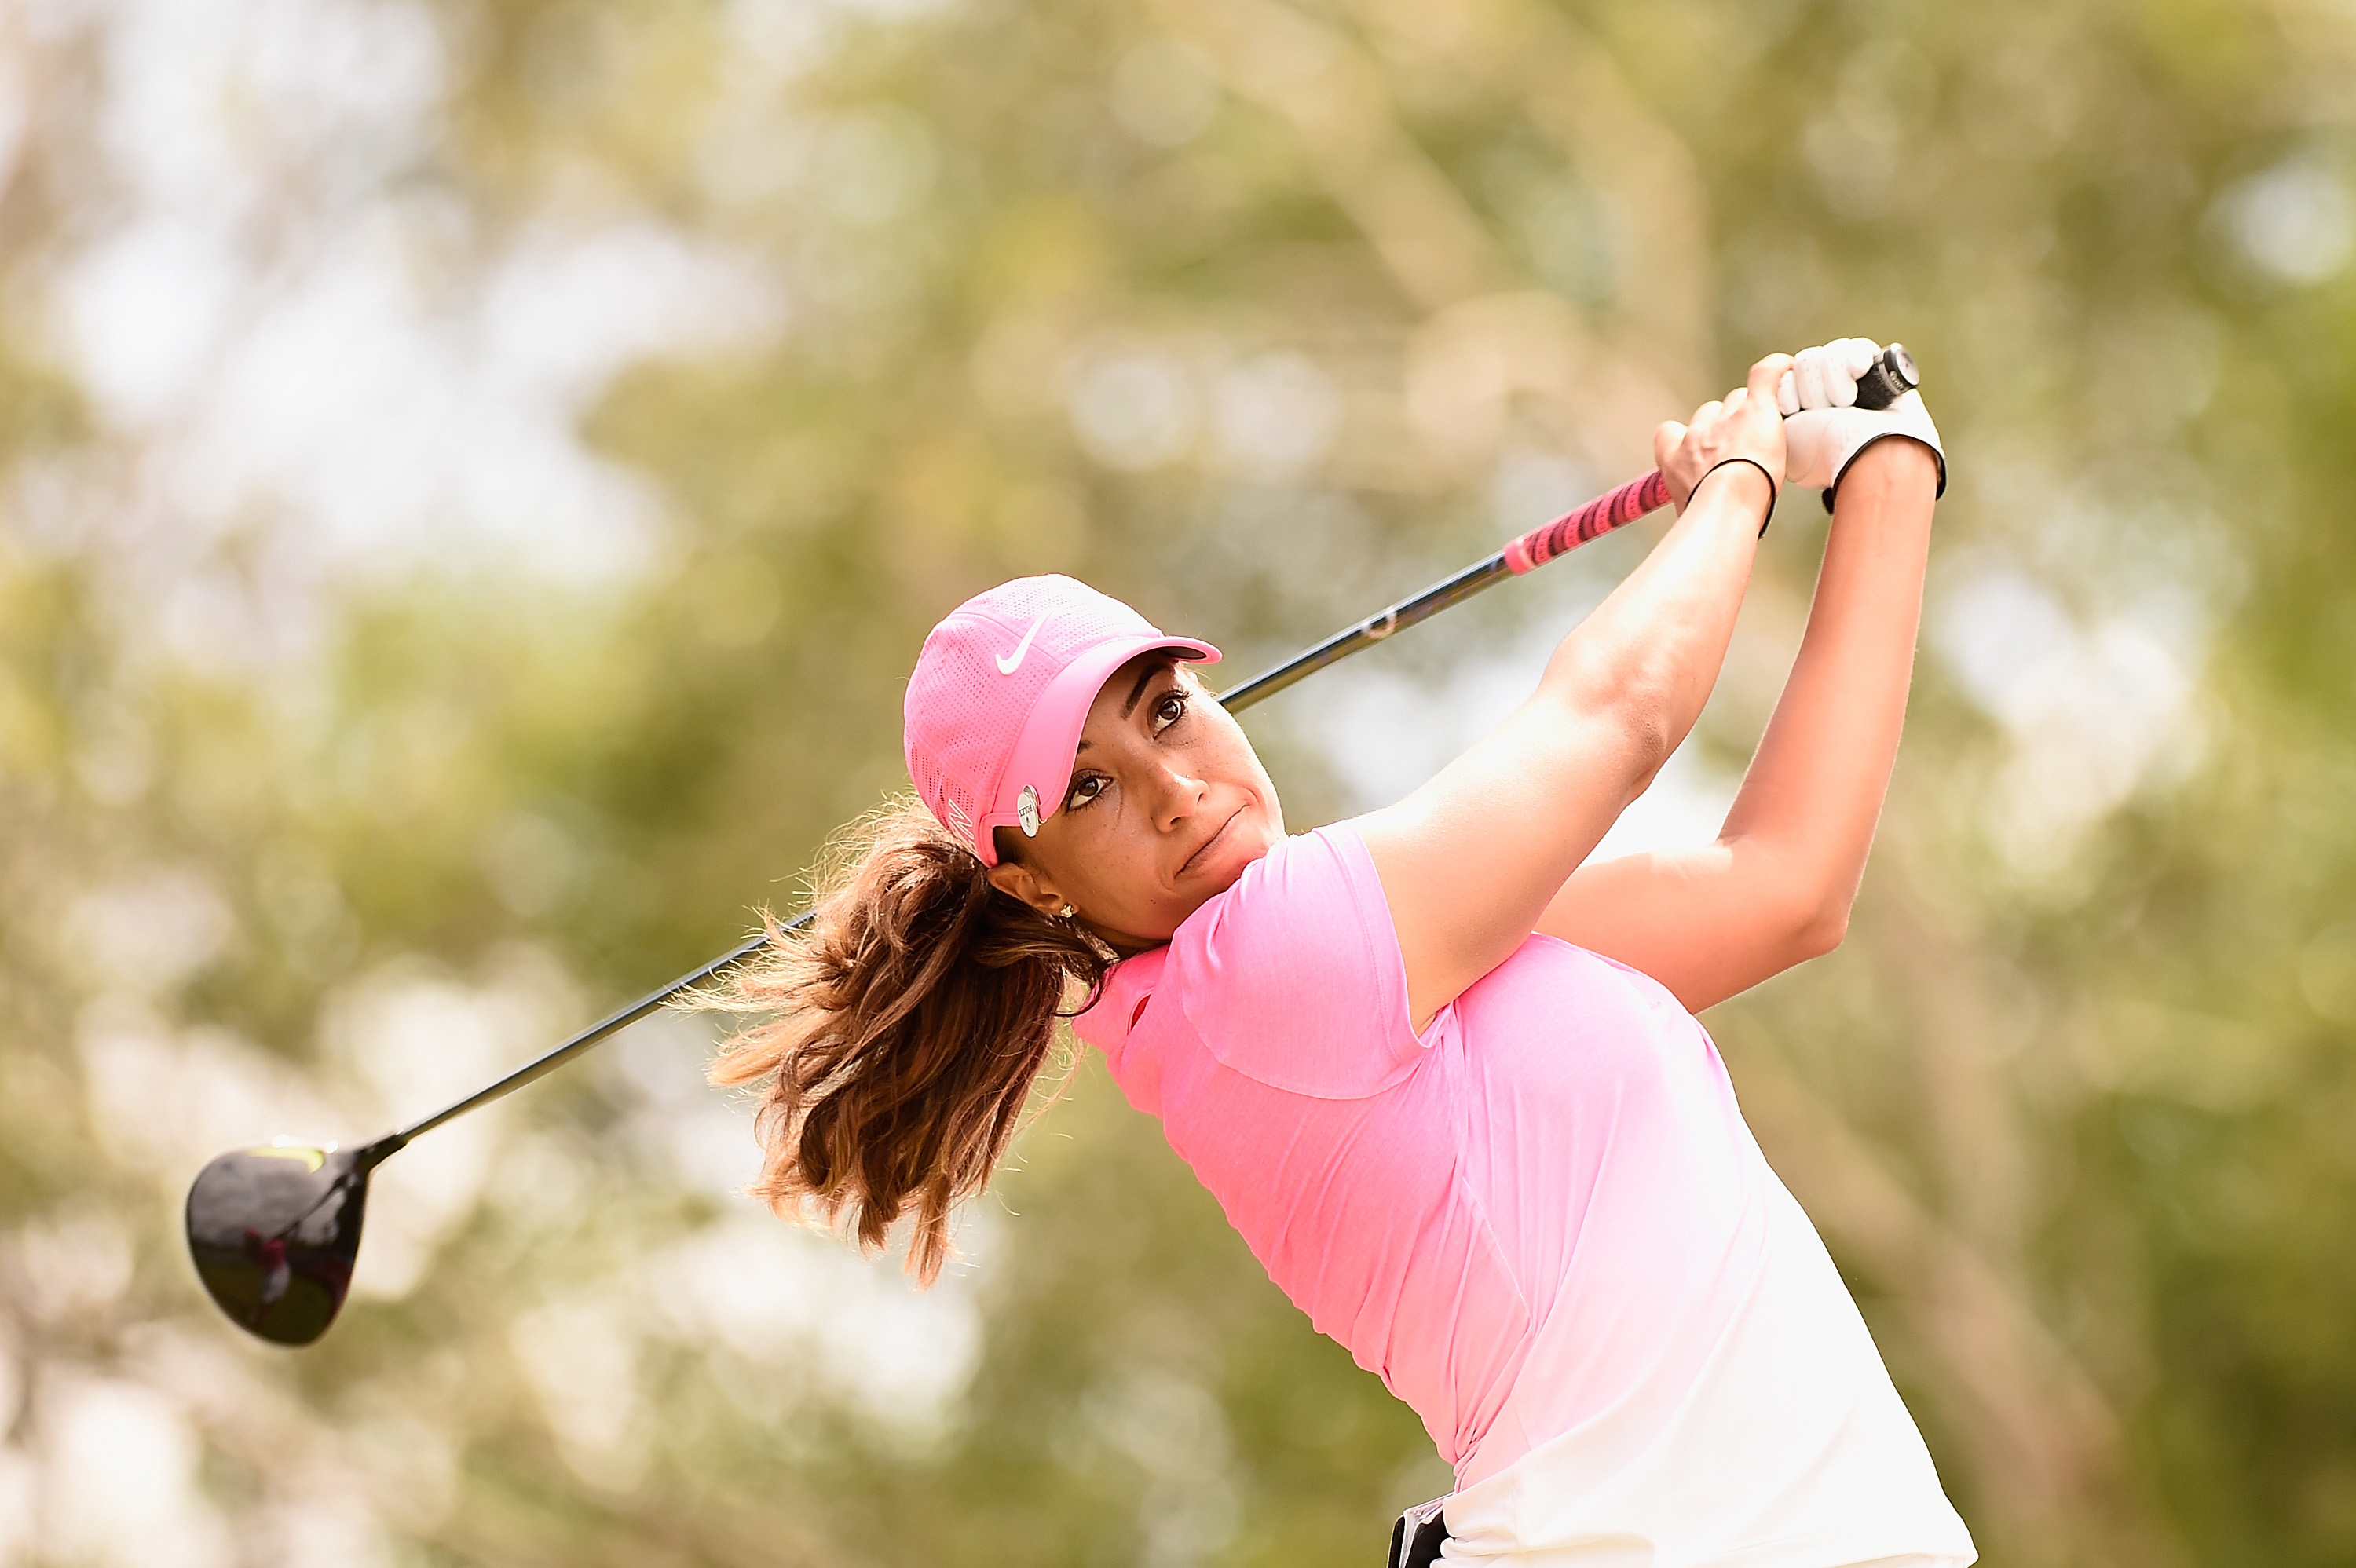 Cheyenne Woods hits her tee shot on the 10th hole in the third round of the 2015 Australian Ladies Masters on Feb. 14, 2015.